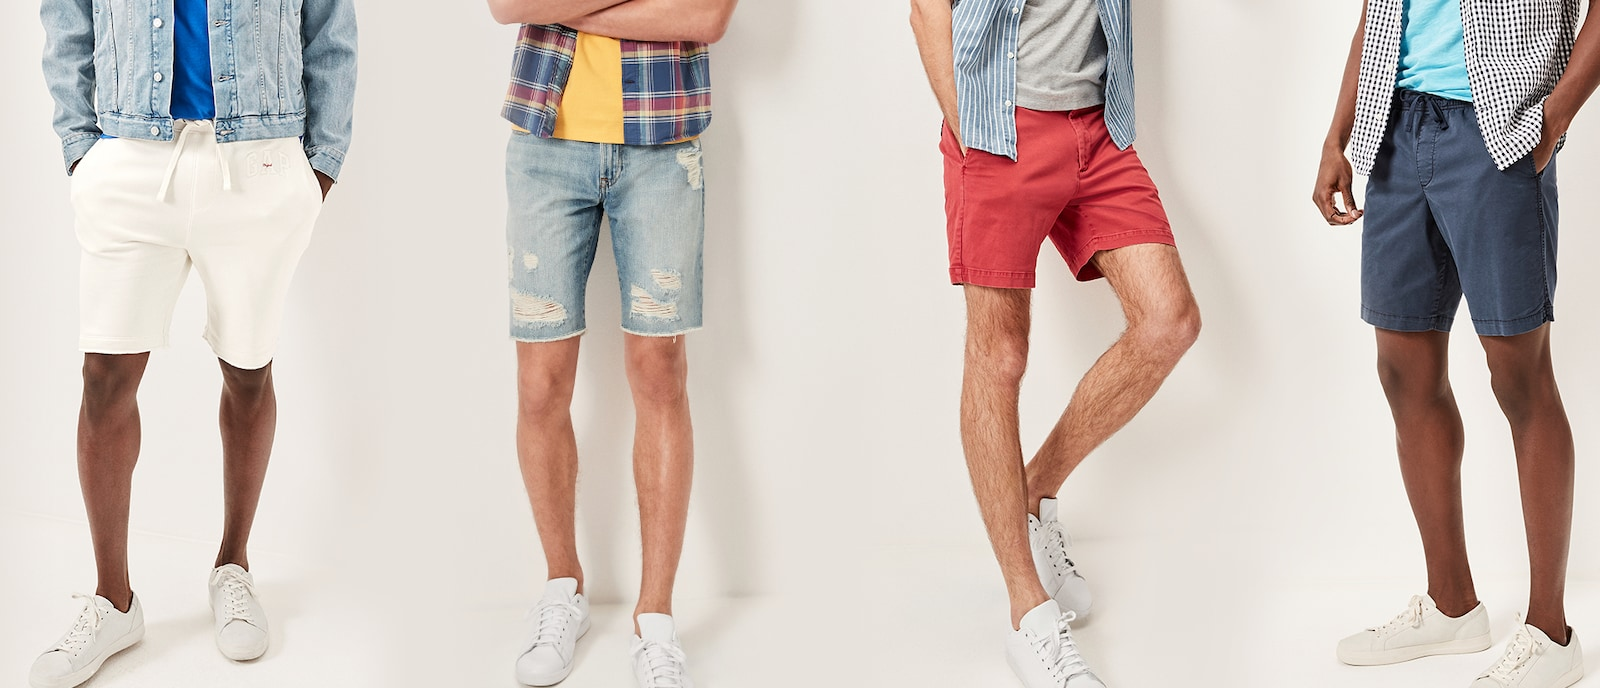 Off the Clock. Shorts made for taking it really easy. Break them in. Wear them out. SHOP SHORTS